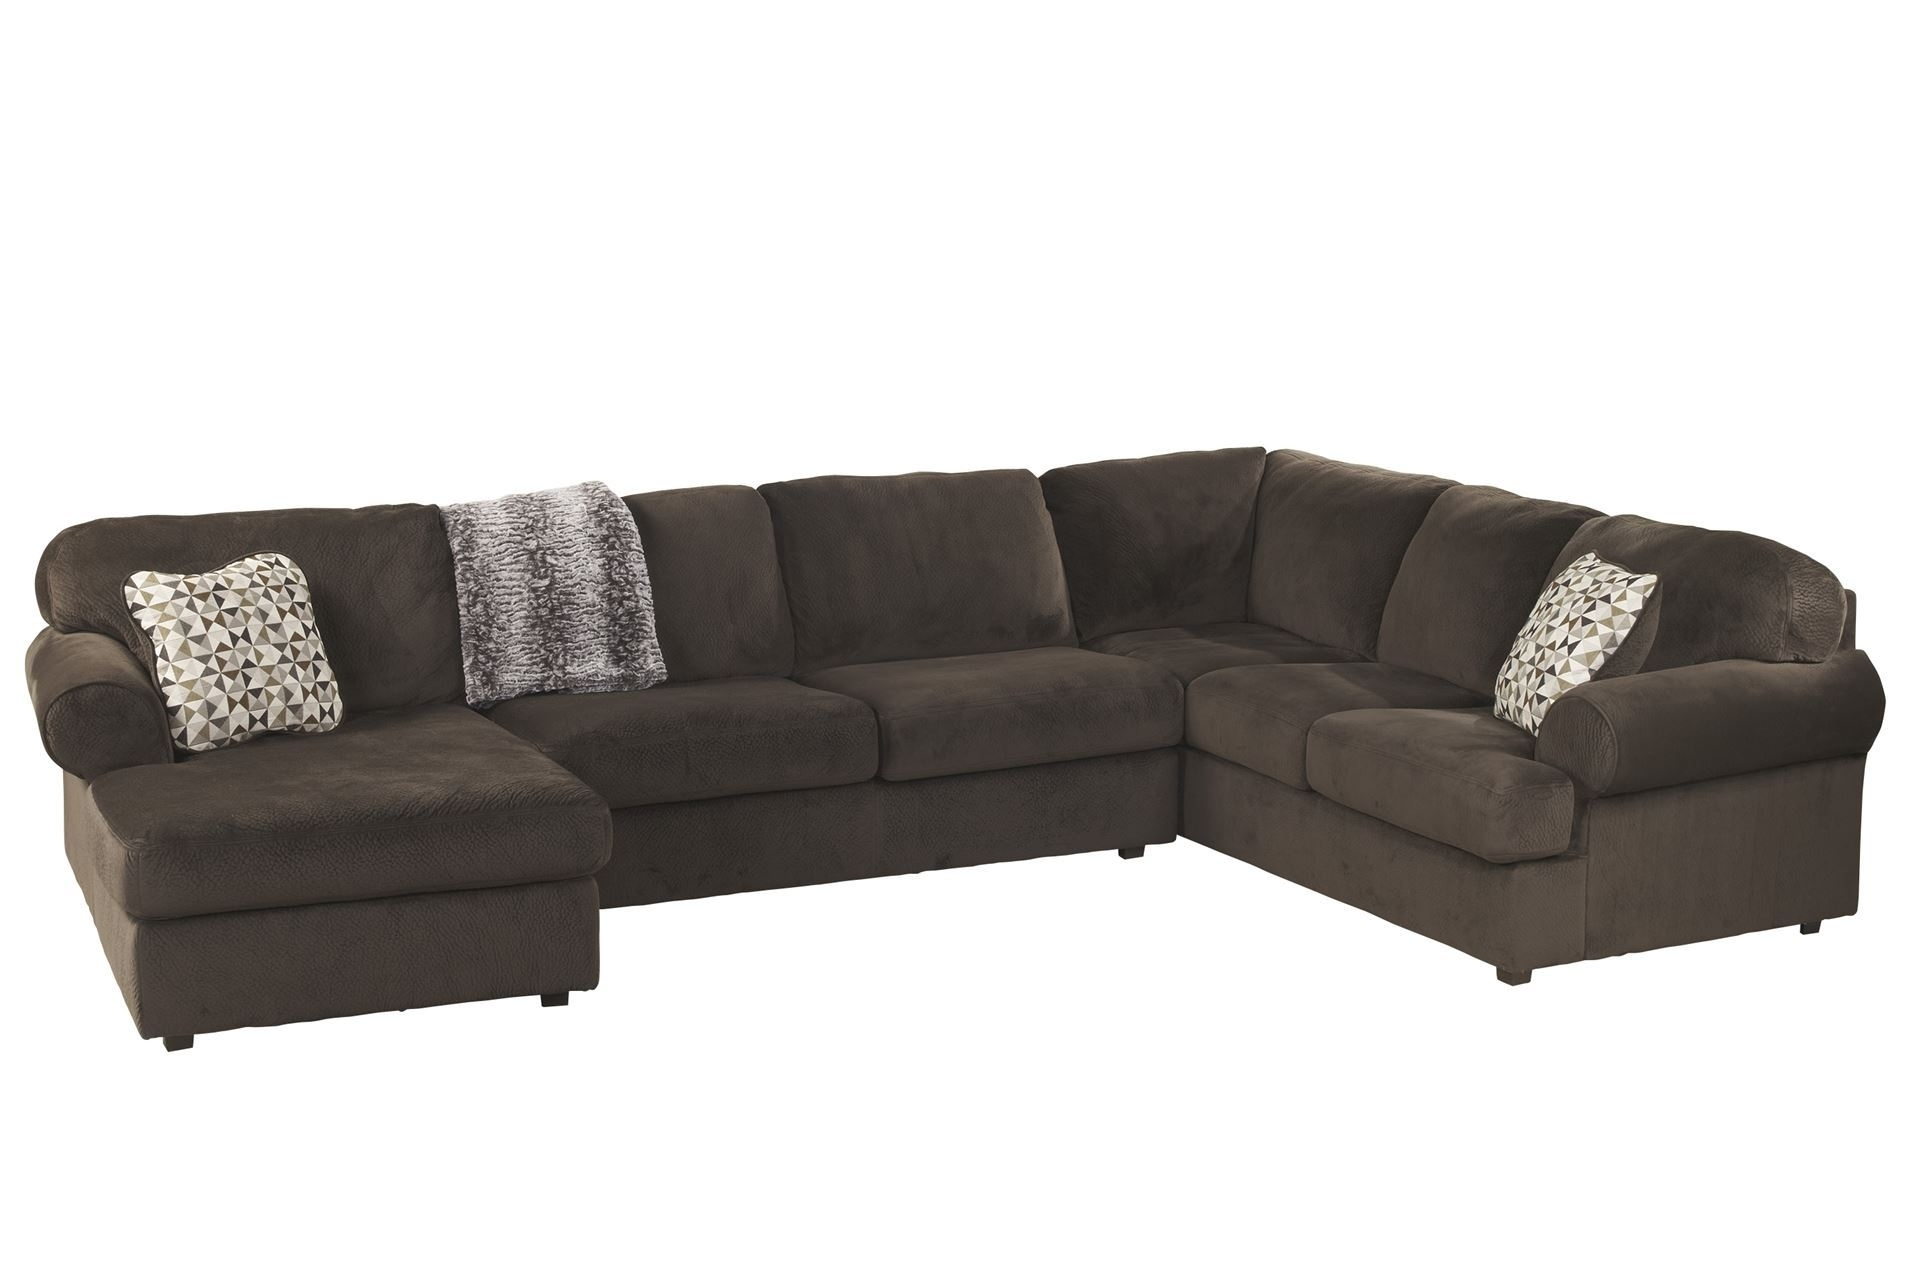 Jessa Place Chocolate 3 Piece Sectional W/raf Chaise | Living Rooms in Homemakers Sectional Sofas (Image 5 of 10)